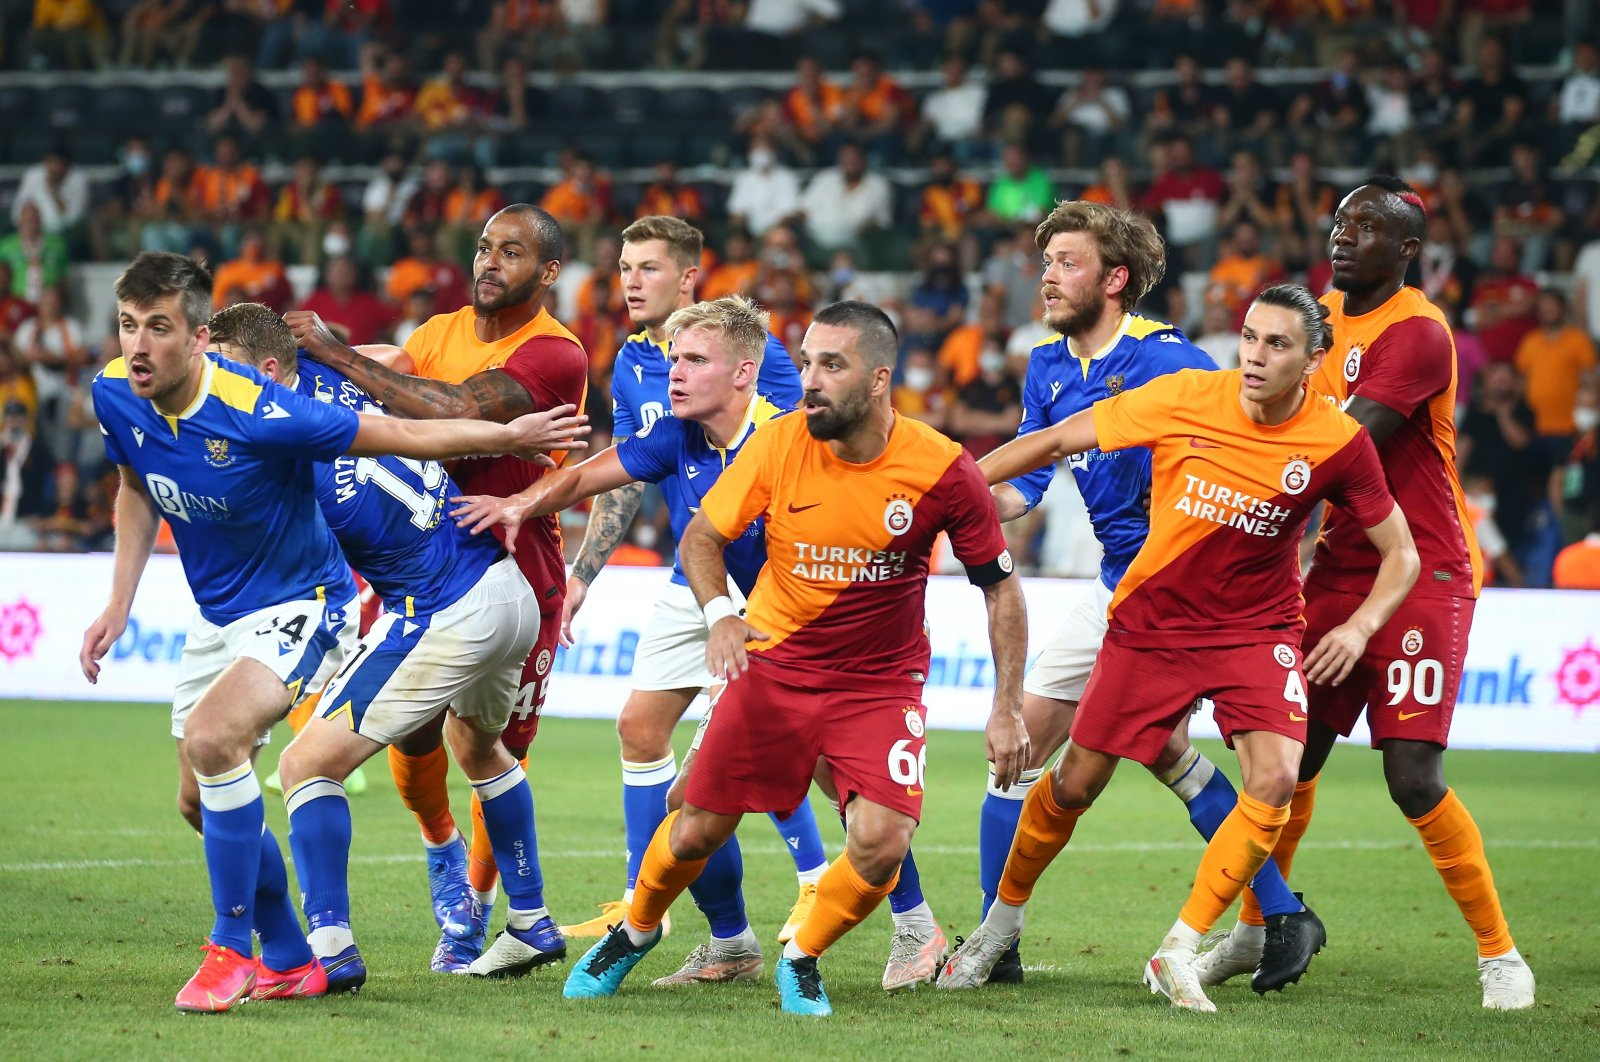 Galatasaray and St. Johnstone players are seen in action at Istanbul's Fatih Terim Stadium on Aug. 5, 2021 (IHA Photo)